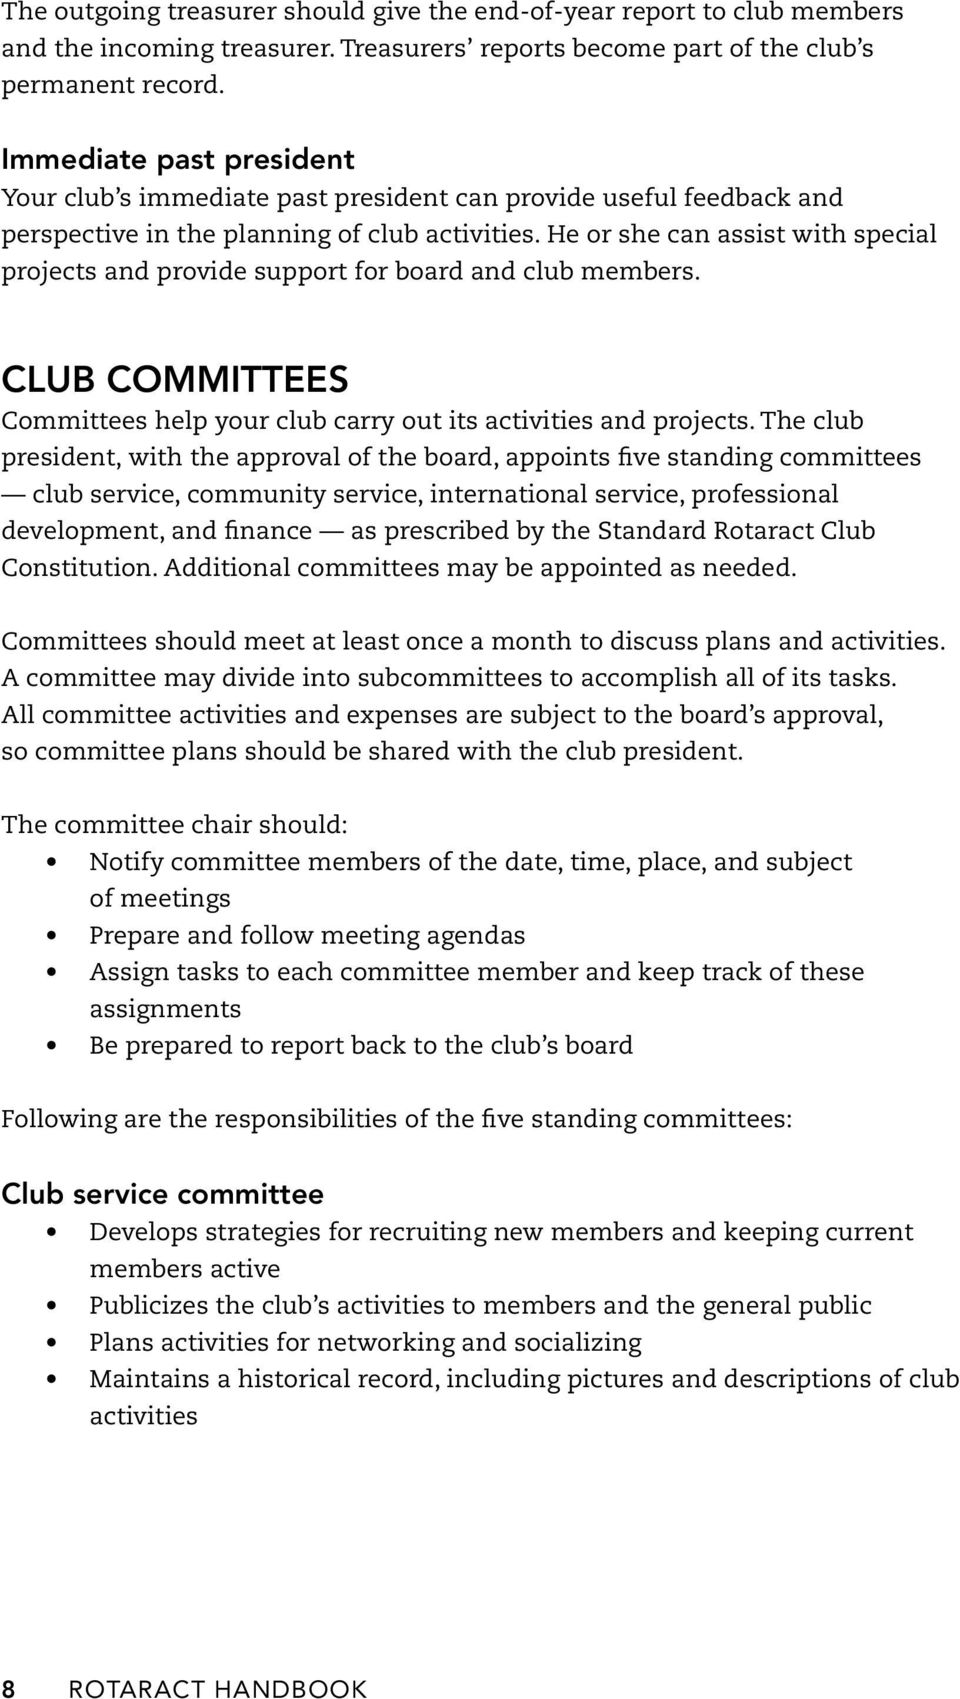 He or she can assist with special projects and provide support for board and club members. Club Committees Committees help your club carry out its activities and projects.